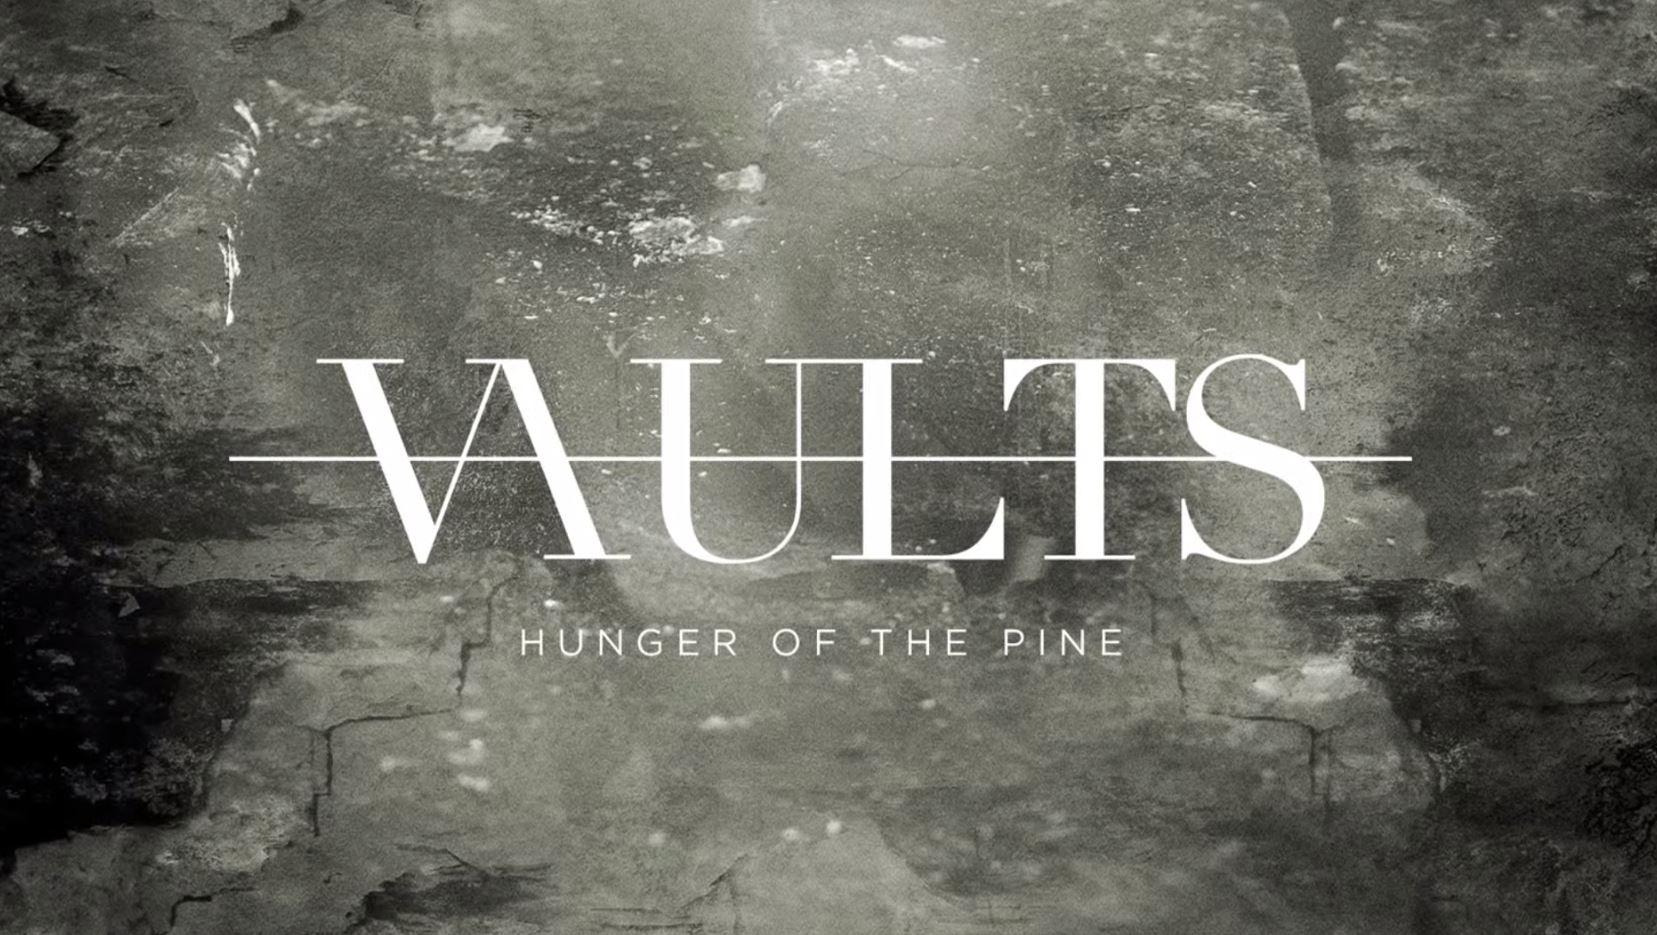 Vaults - Hunger of the Pine